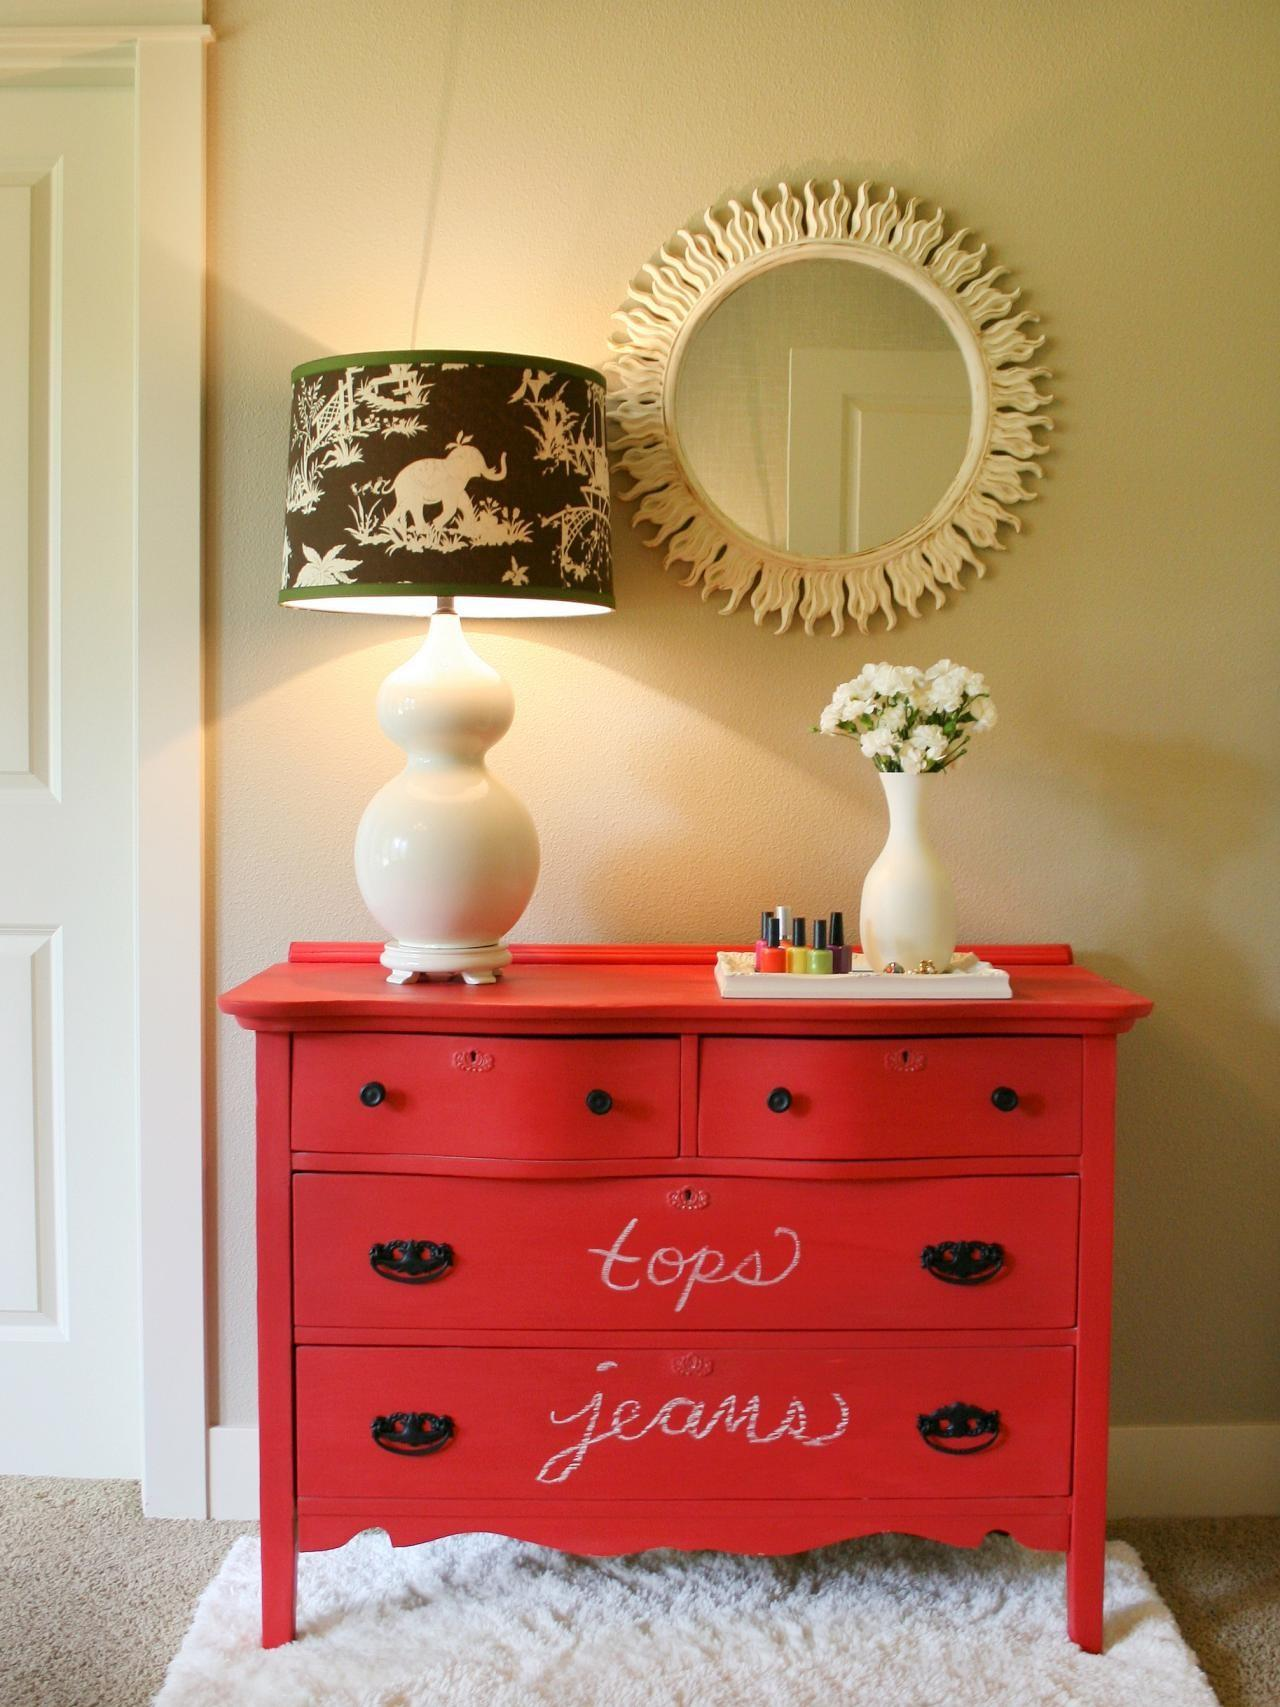 Create Colorful Chalkboard Dresser